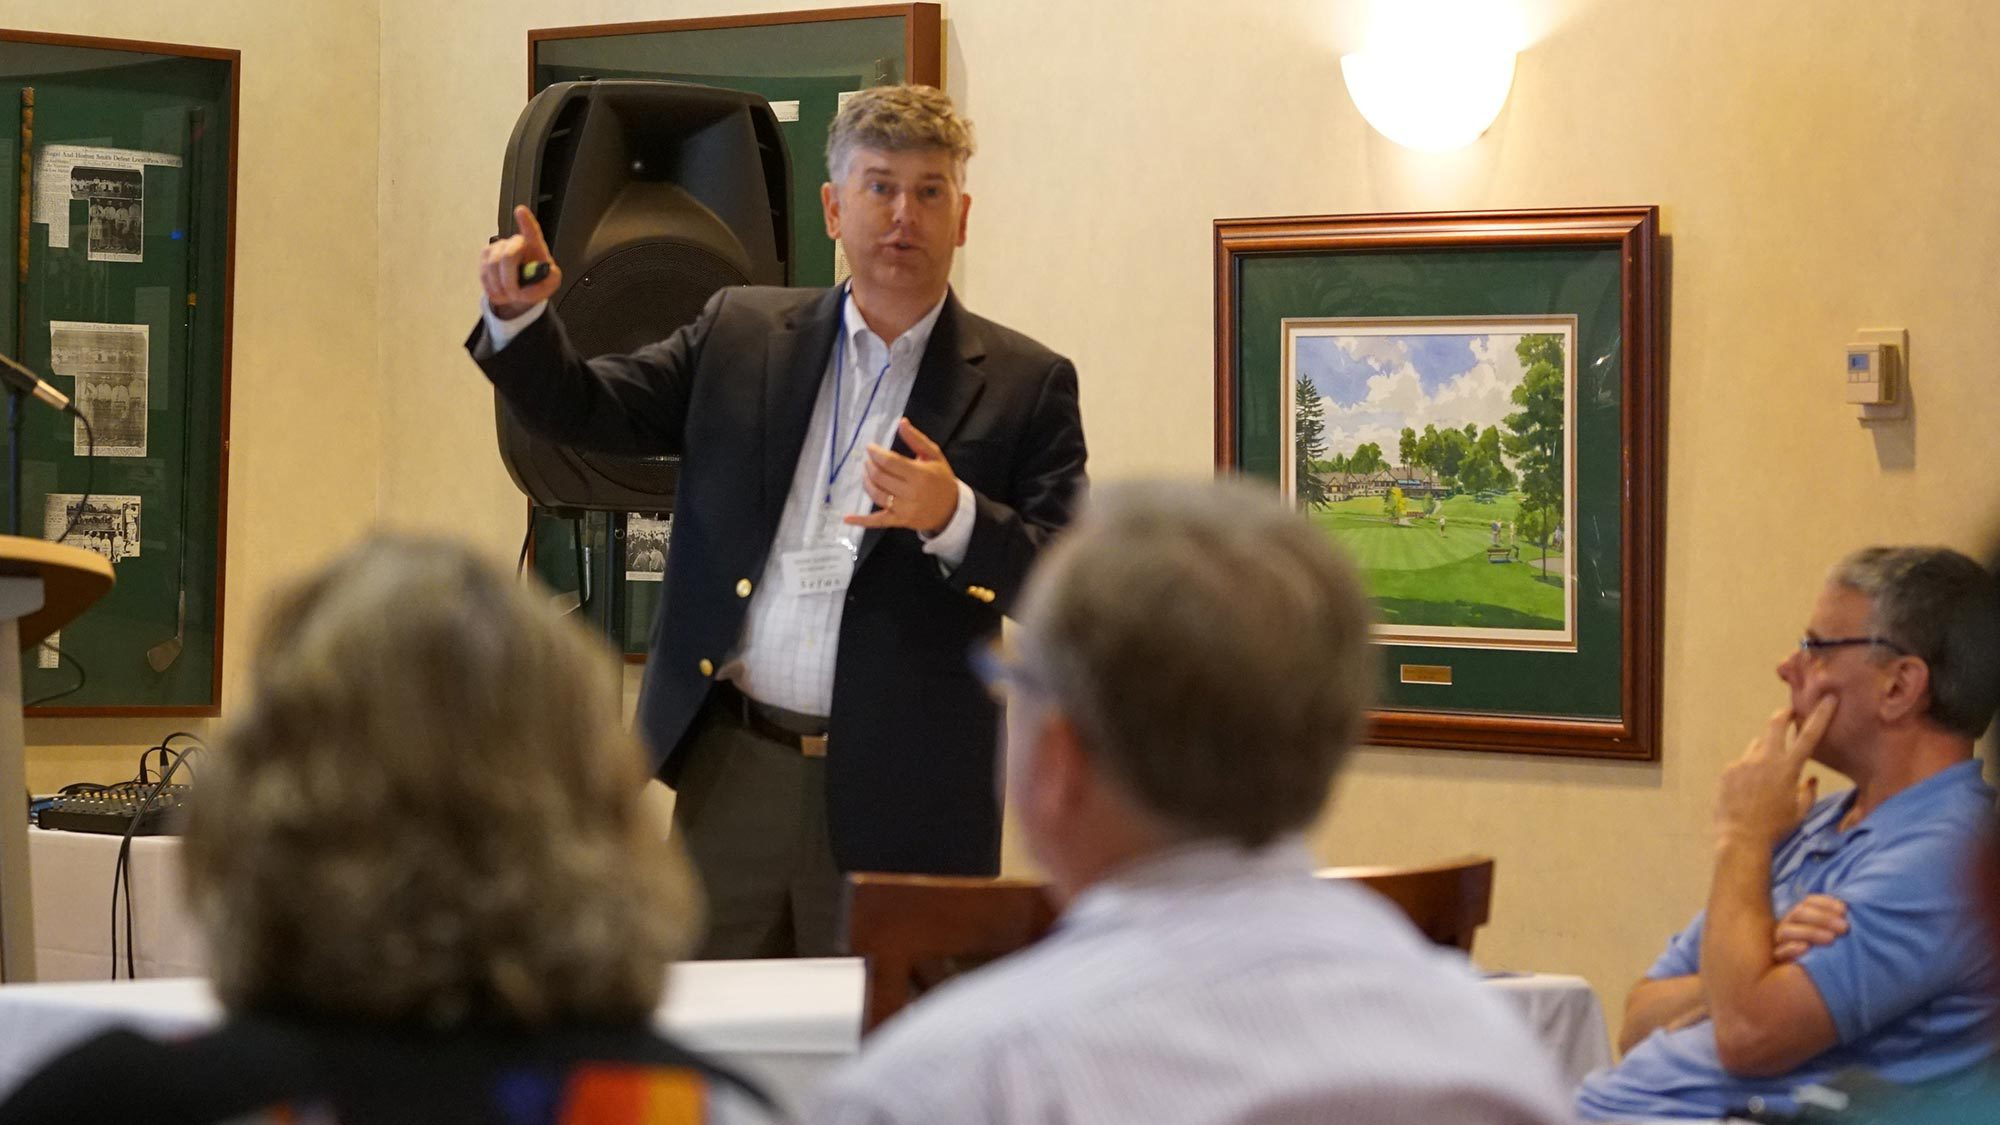 John Sanders of Sefas presents during a break-out session.